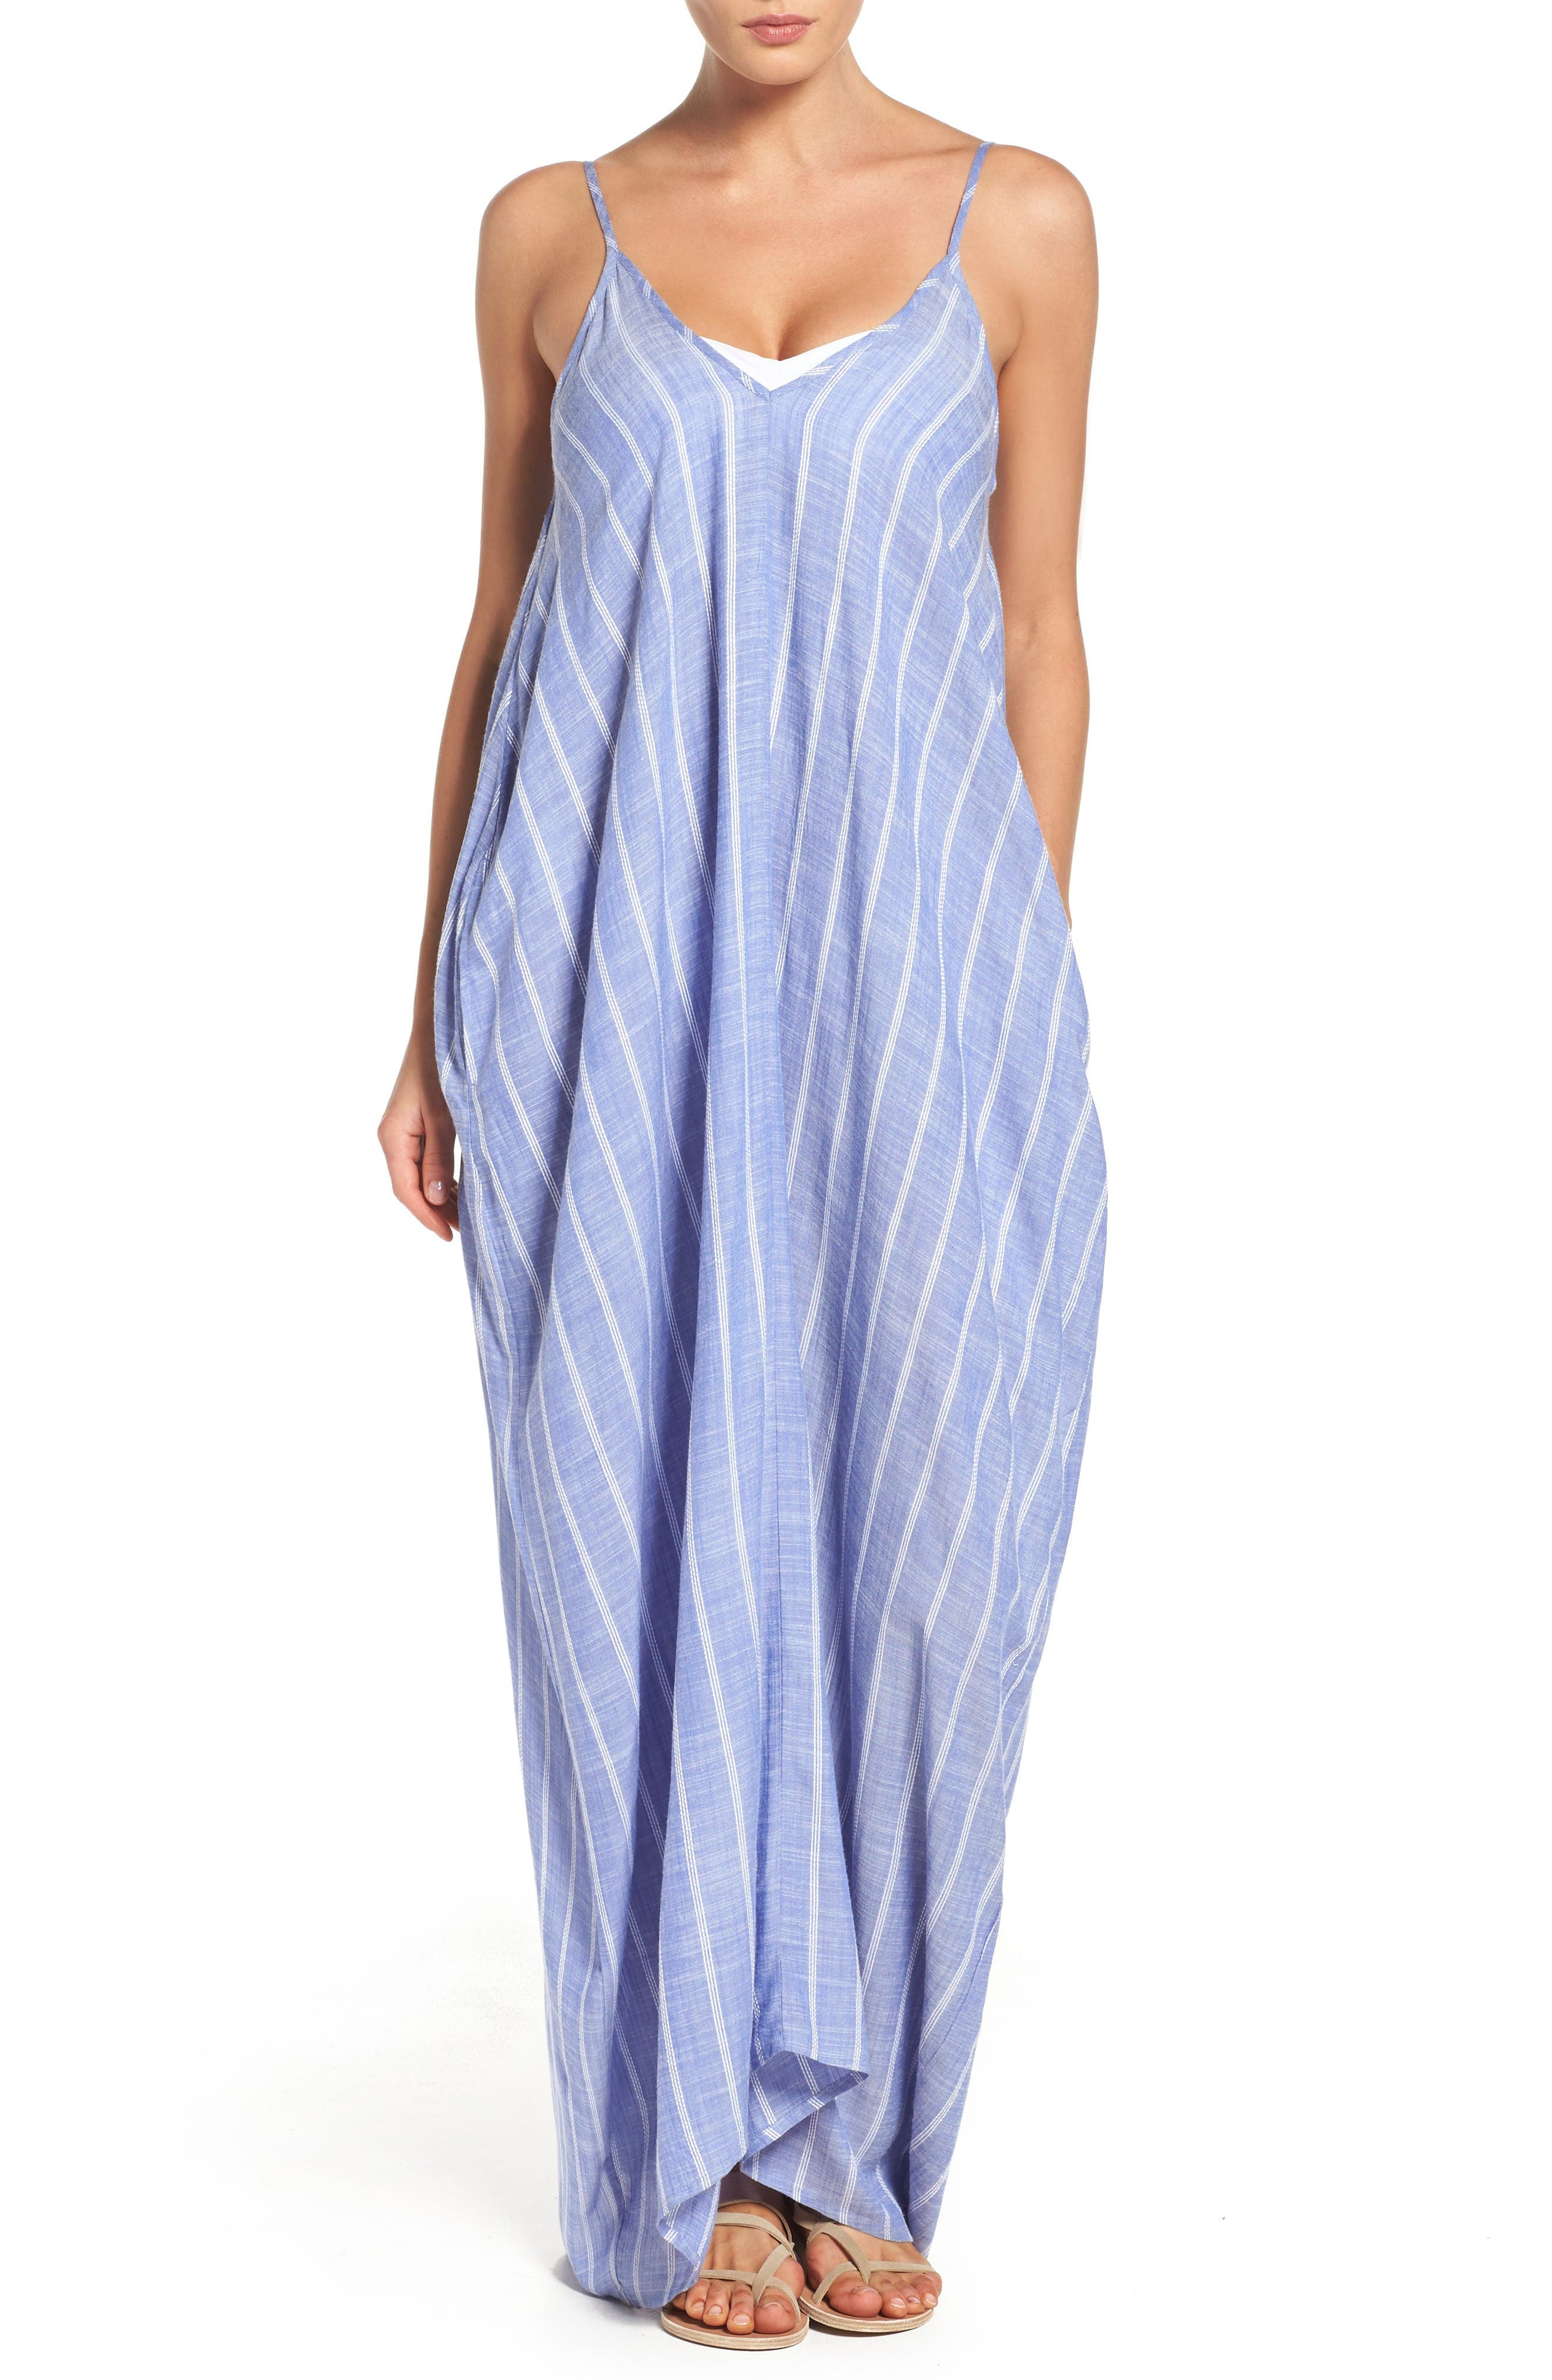 Maxi dress swimsuit cover ups